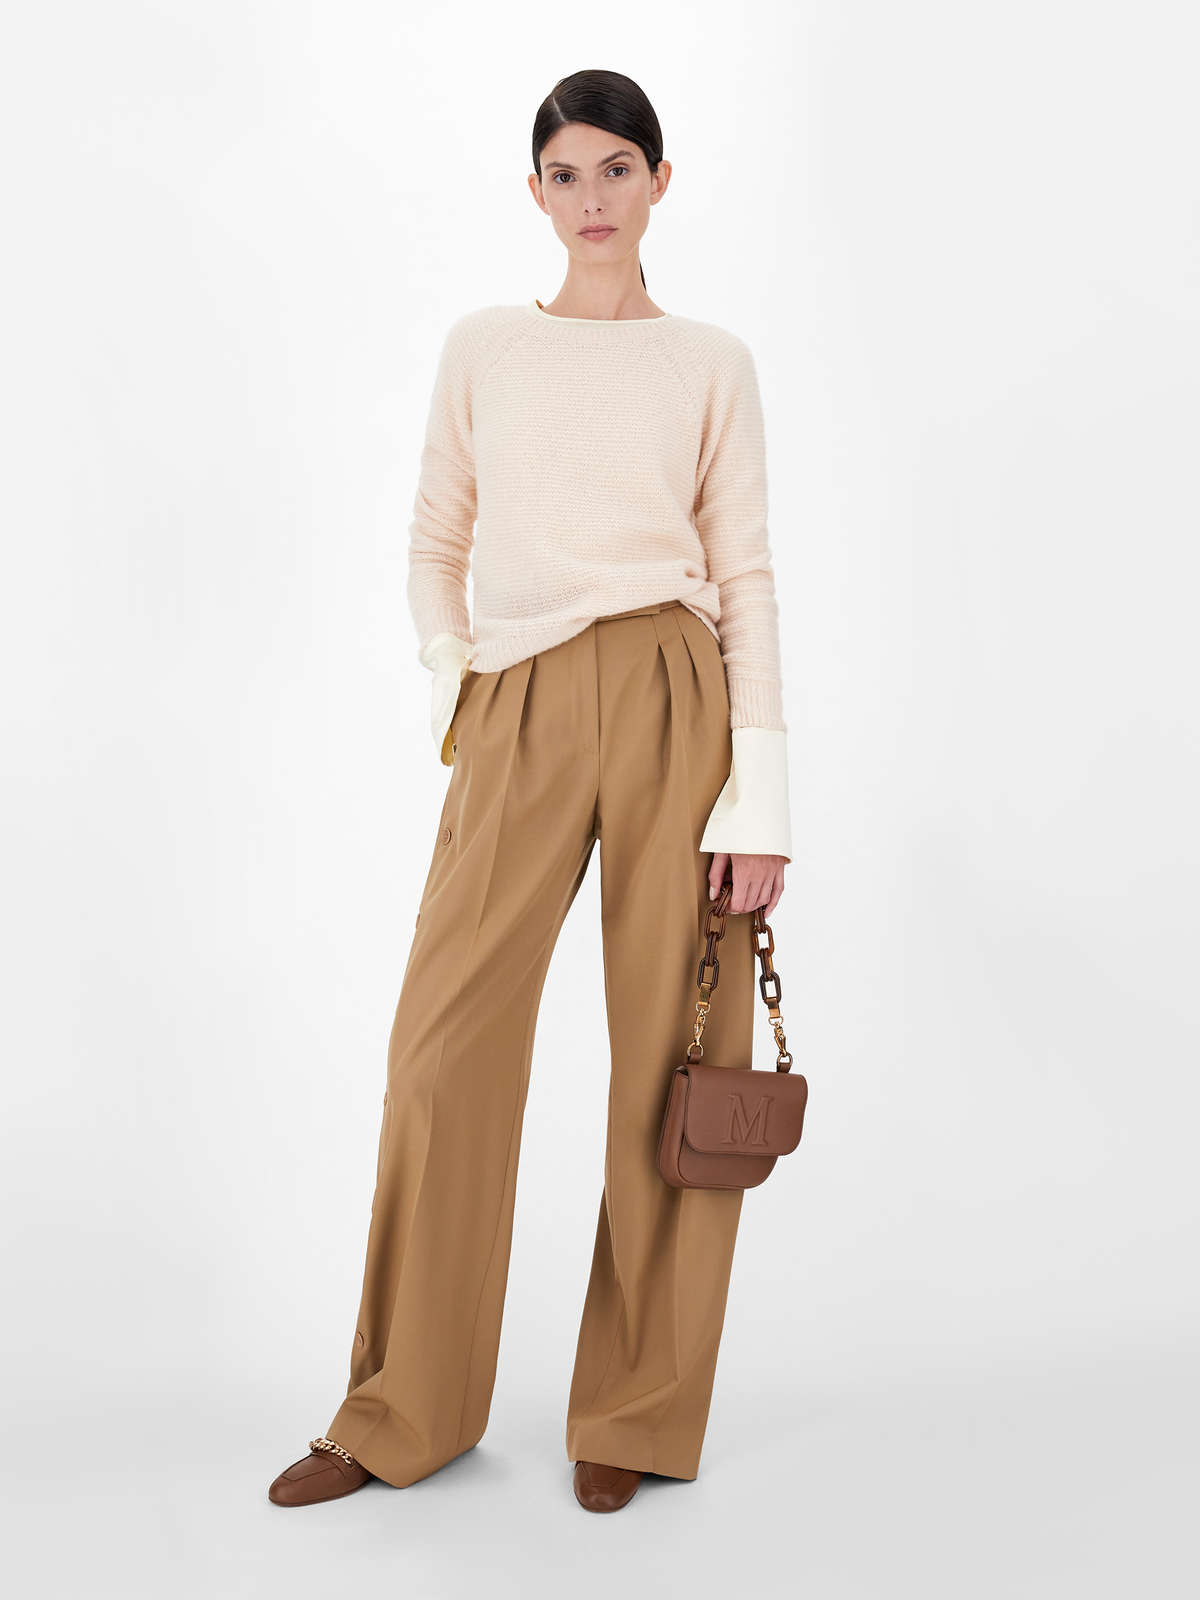 Cashmere and silk yarn sweater - Max Mara